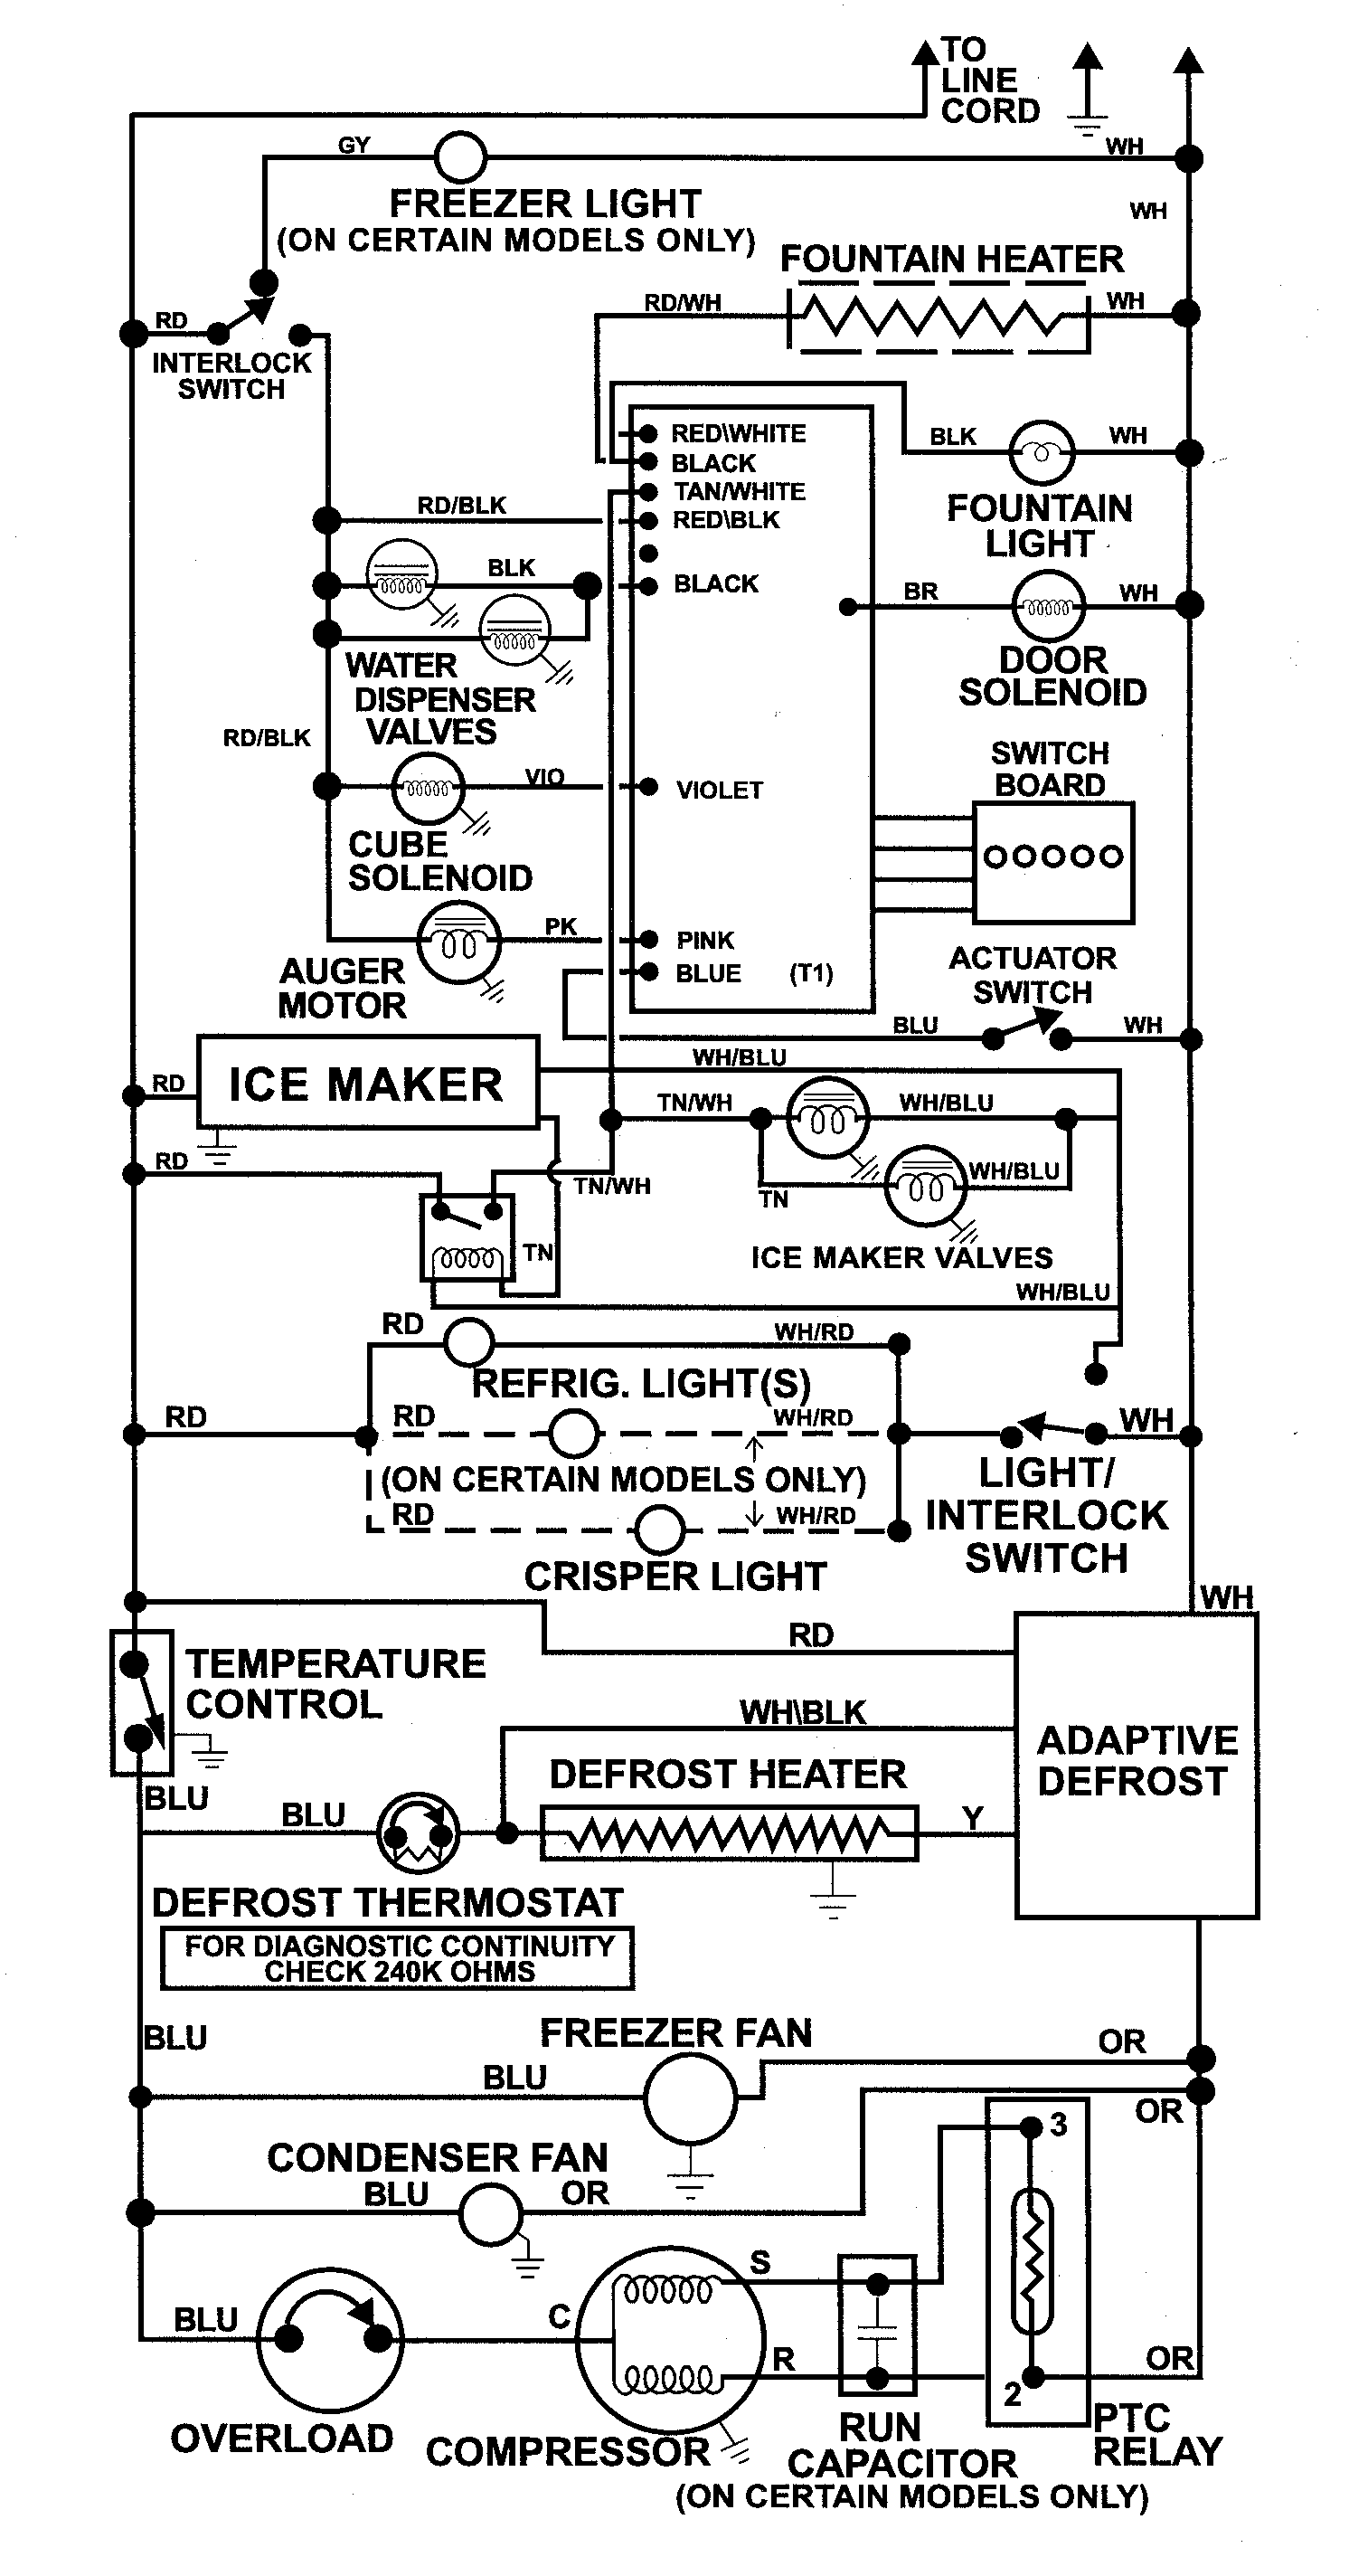 hight resolution of looking for maytag model msd2656deq side by side refrigerator repair maytag refrigerator schematic diagram maytag msd2656deq